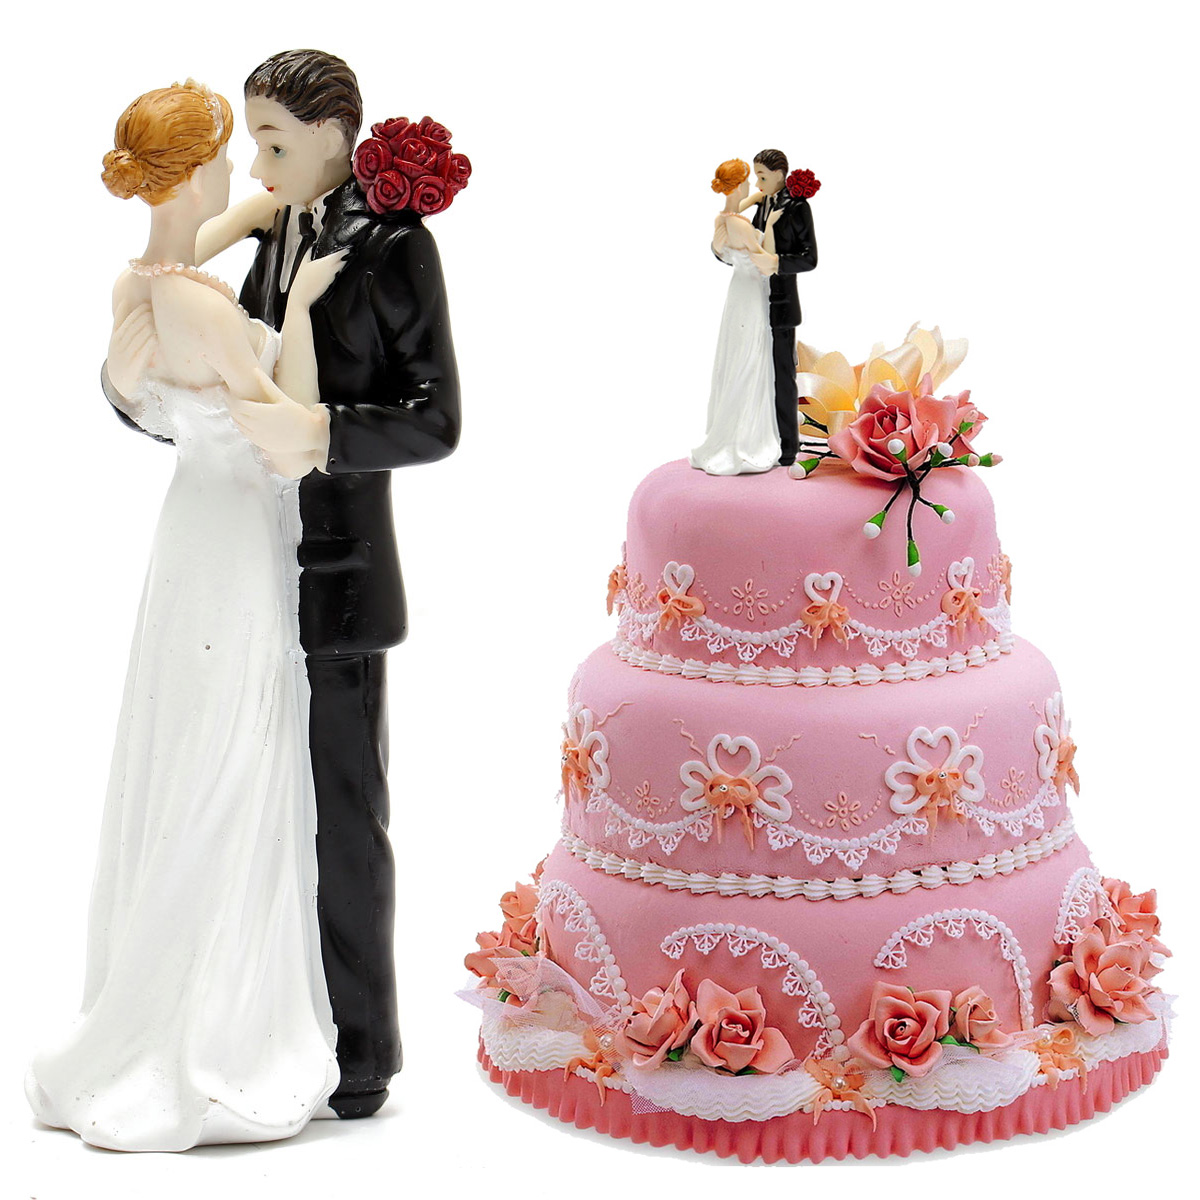 ROMANTIC BRIDE AND GROOM COUPLE WEDDING CAKE TOPPERS